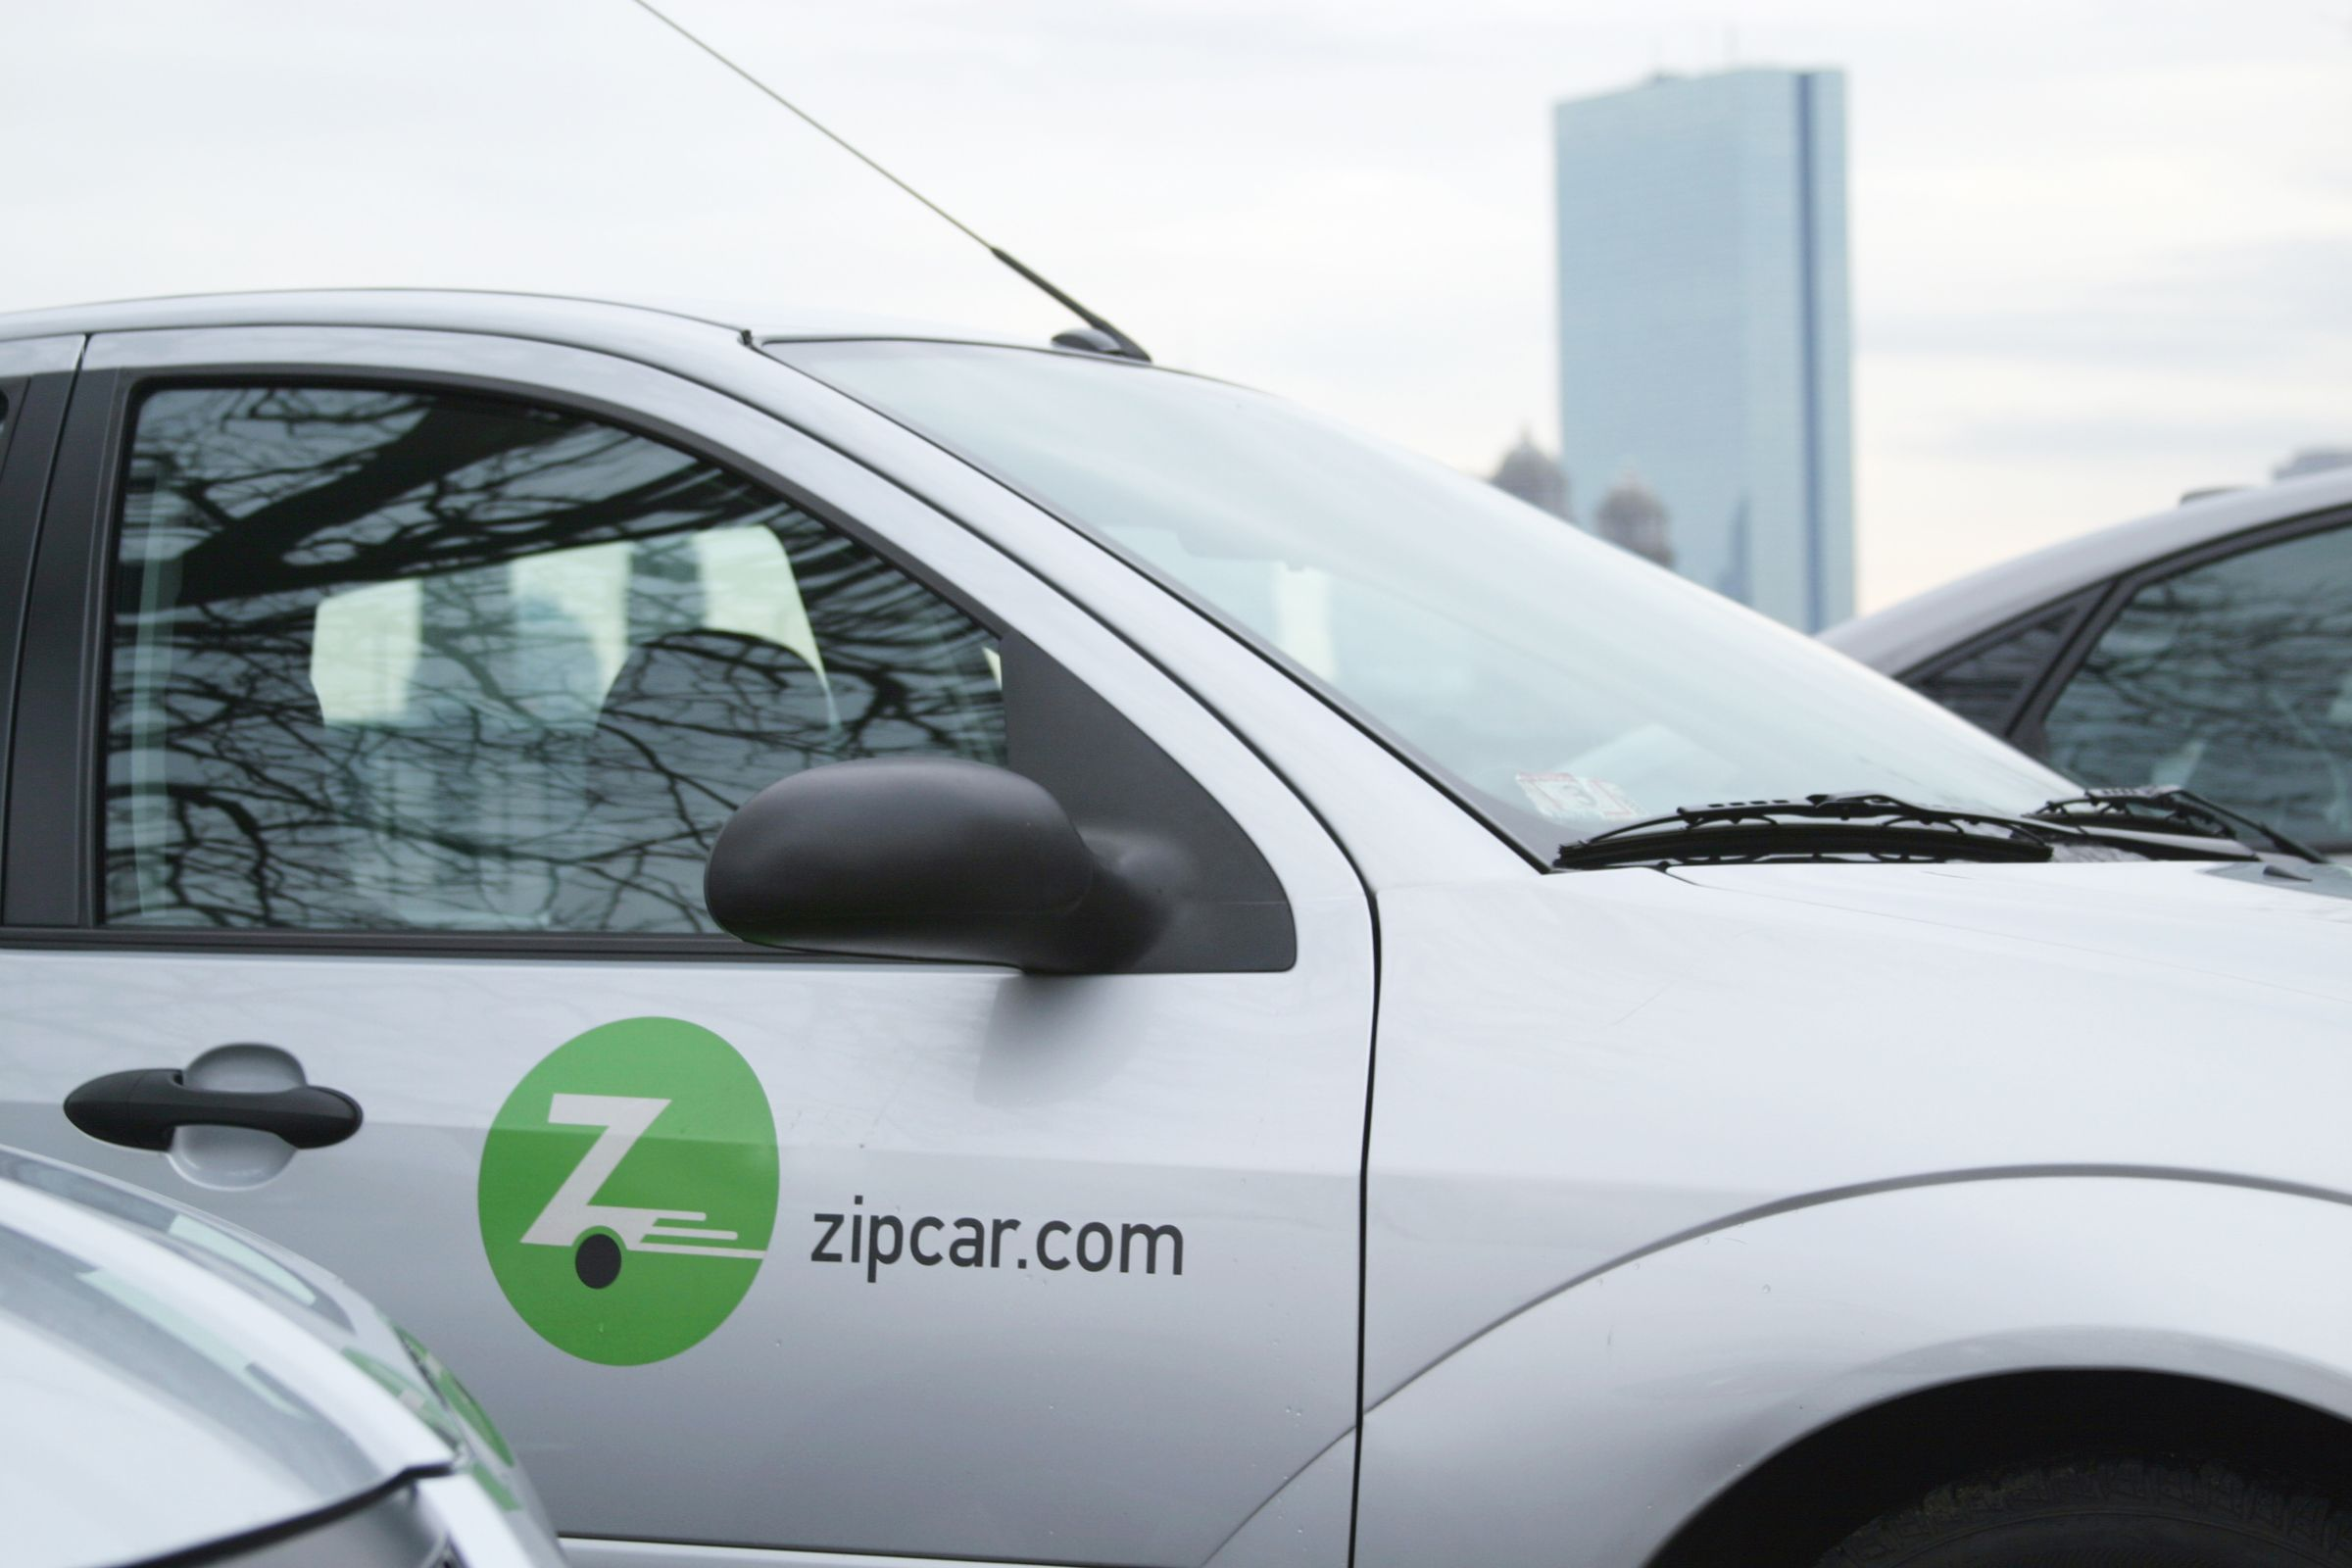 zipcar wheels when you want them http www zipcar com rh pinterest com how to delete a zipcar account how to cancel a zipcar reservation